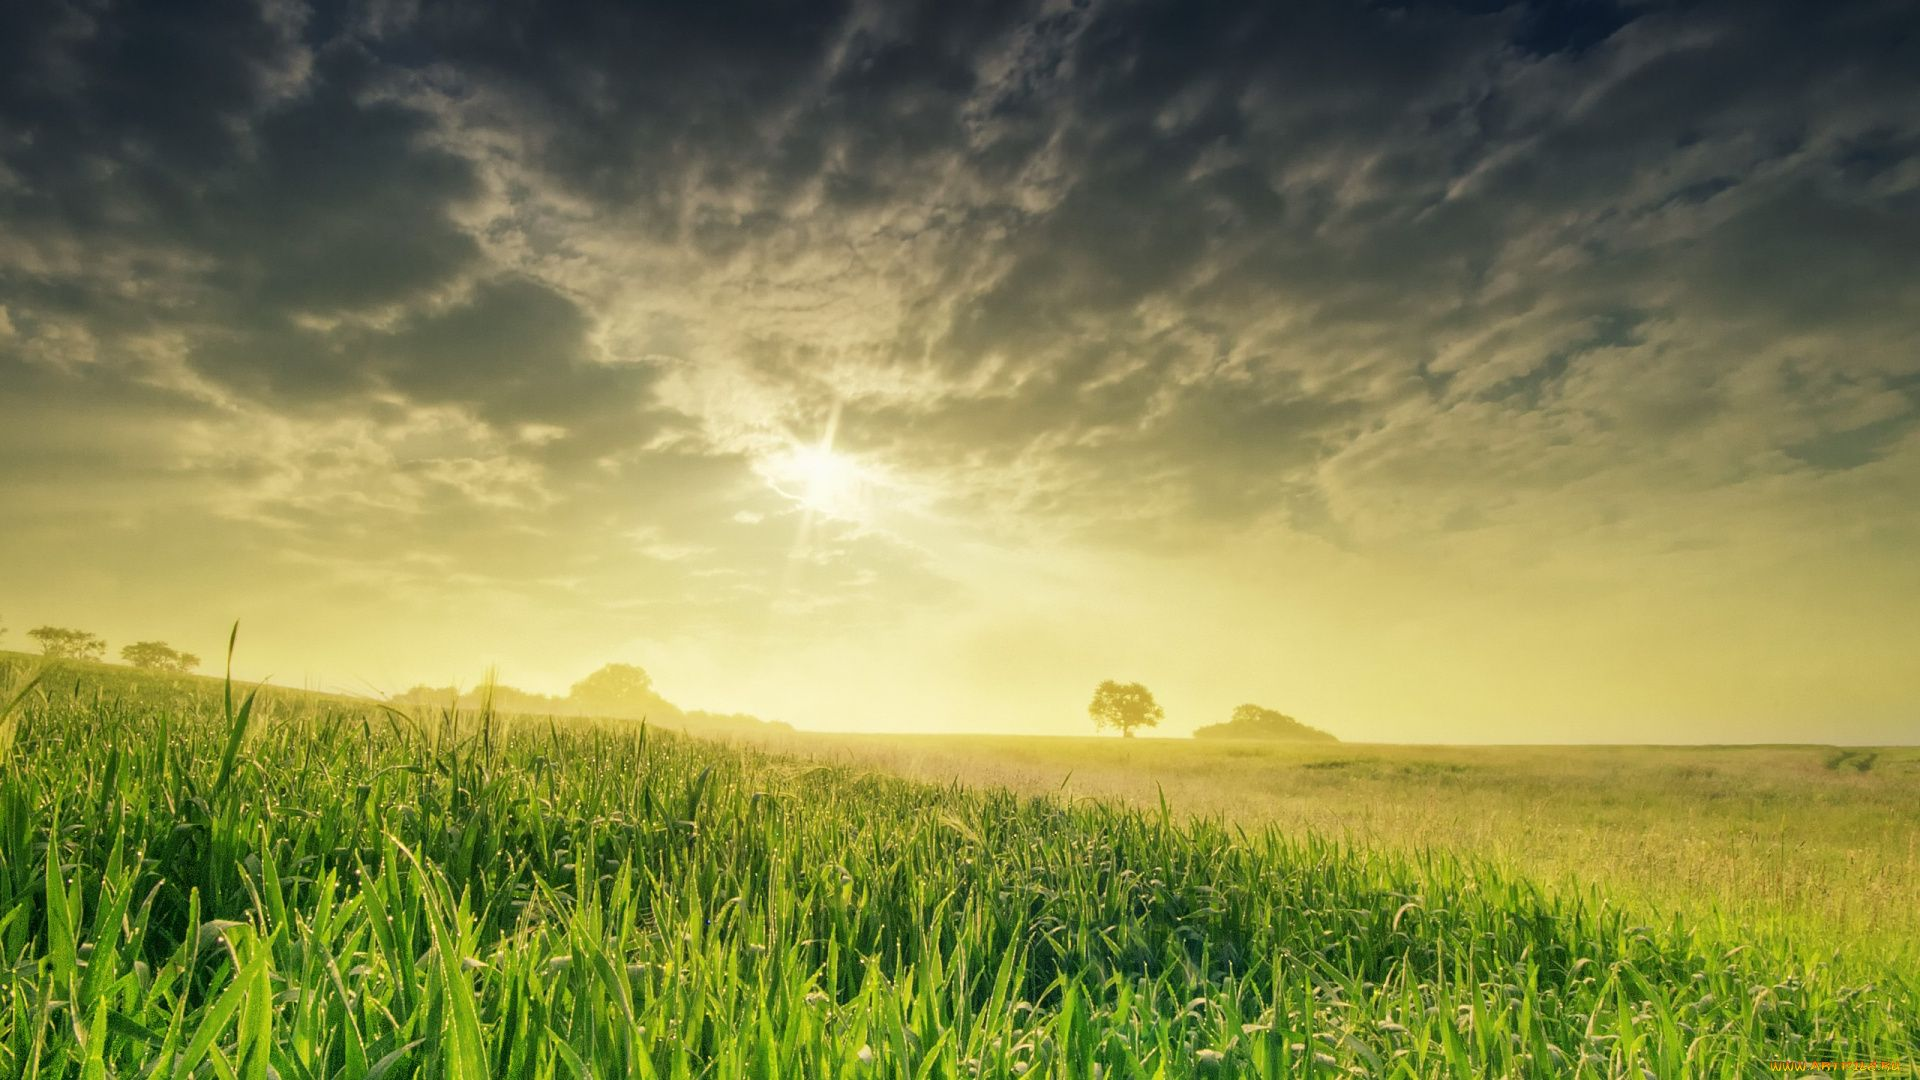 nature wallpaper with grass and sky